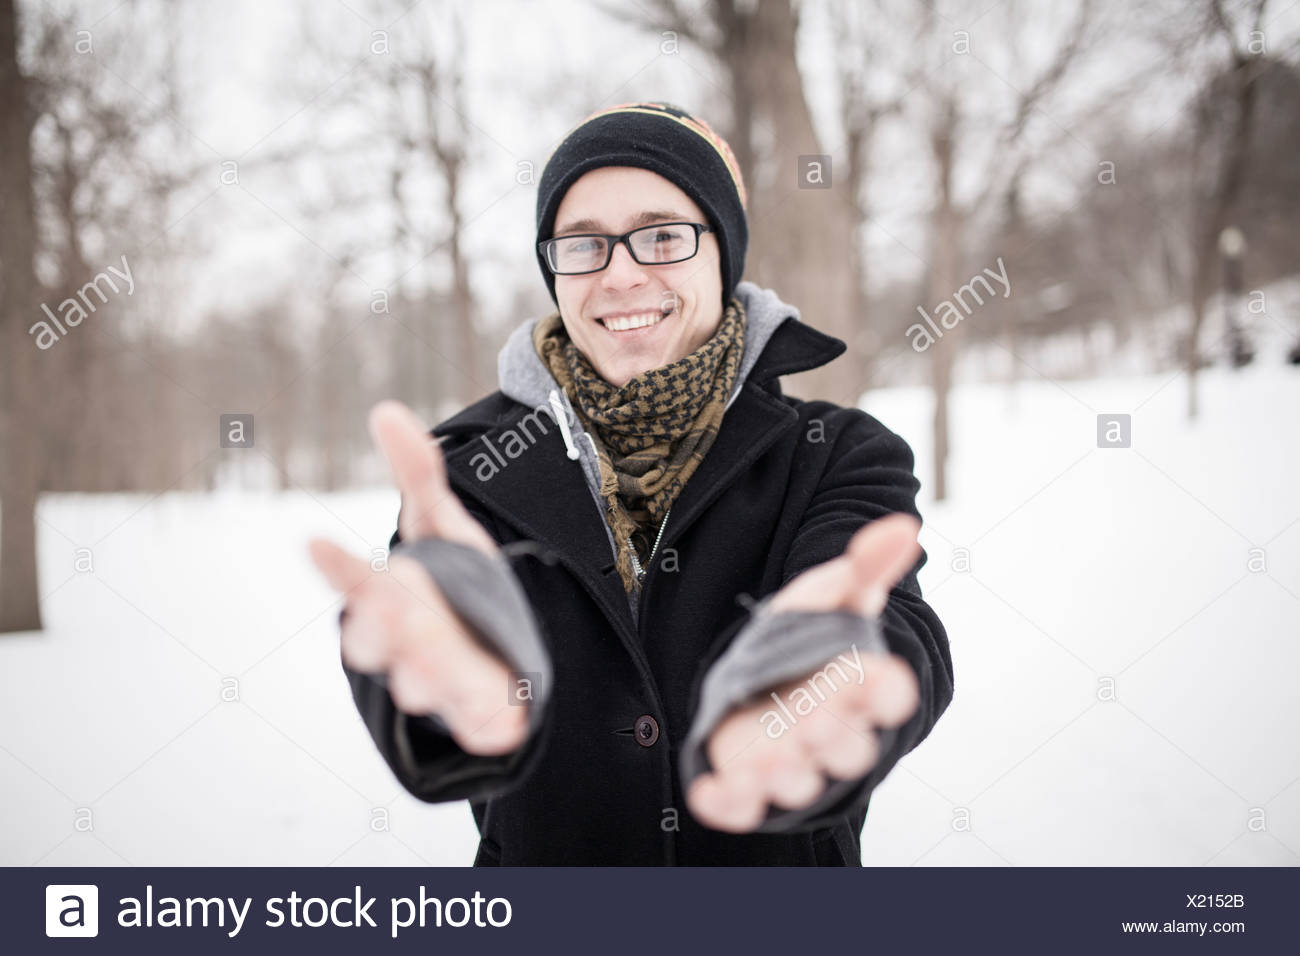 Young man standing in park reaching towards camera - Stock Image